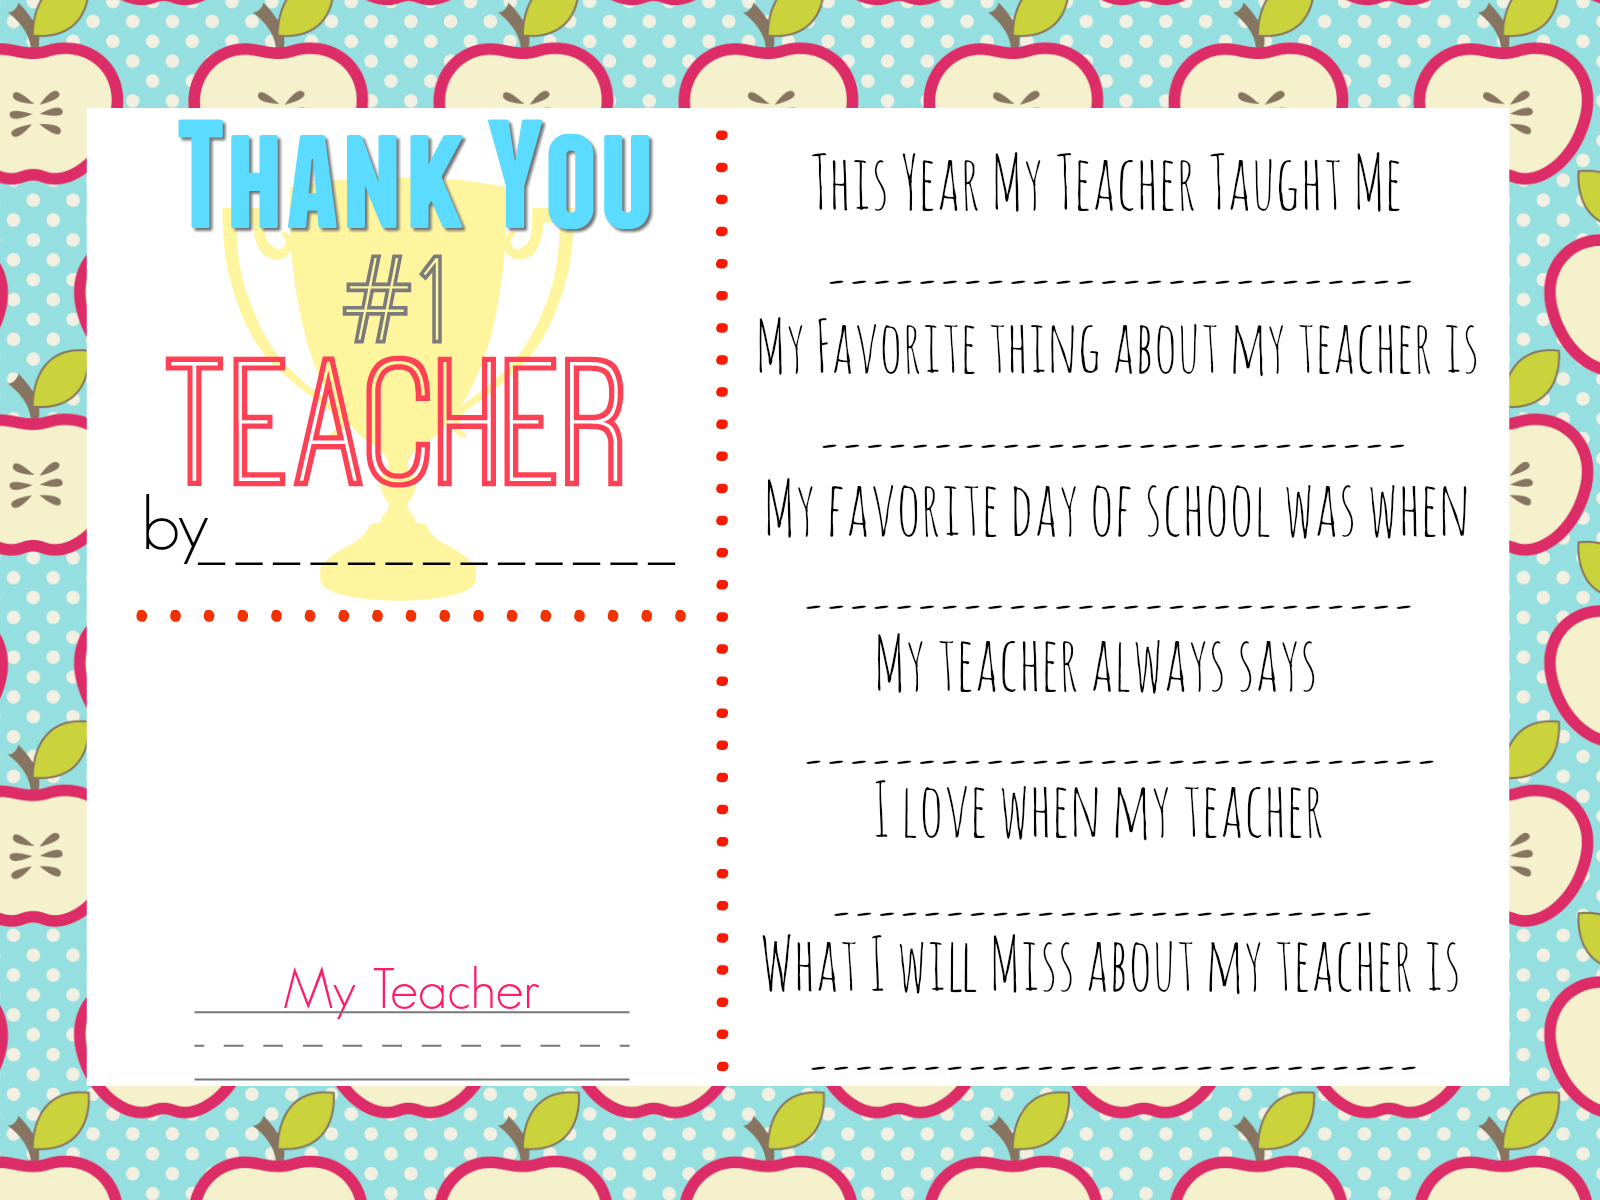 picture relating to Teacher Thank You Printable named 10 Trainer Reward Plans w/ Free of charge Printable Reward Tags - Hip2Help save